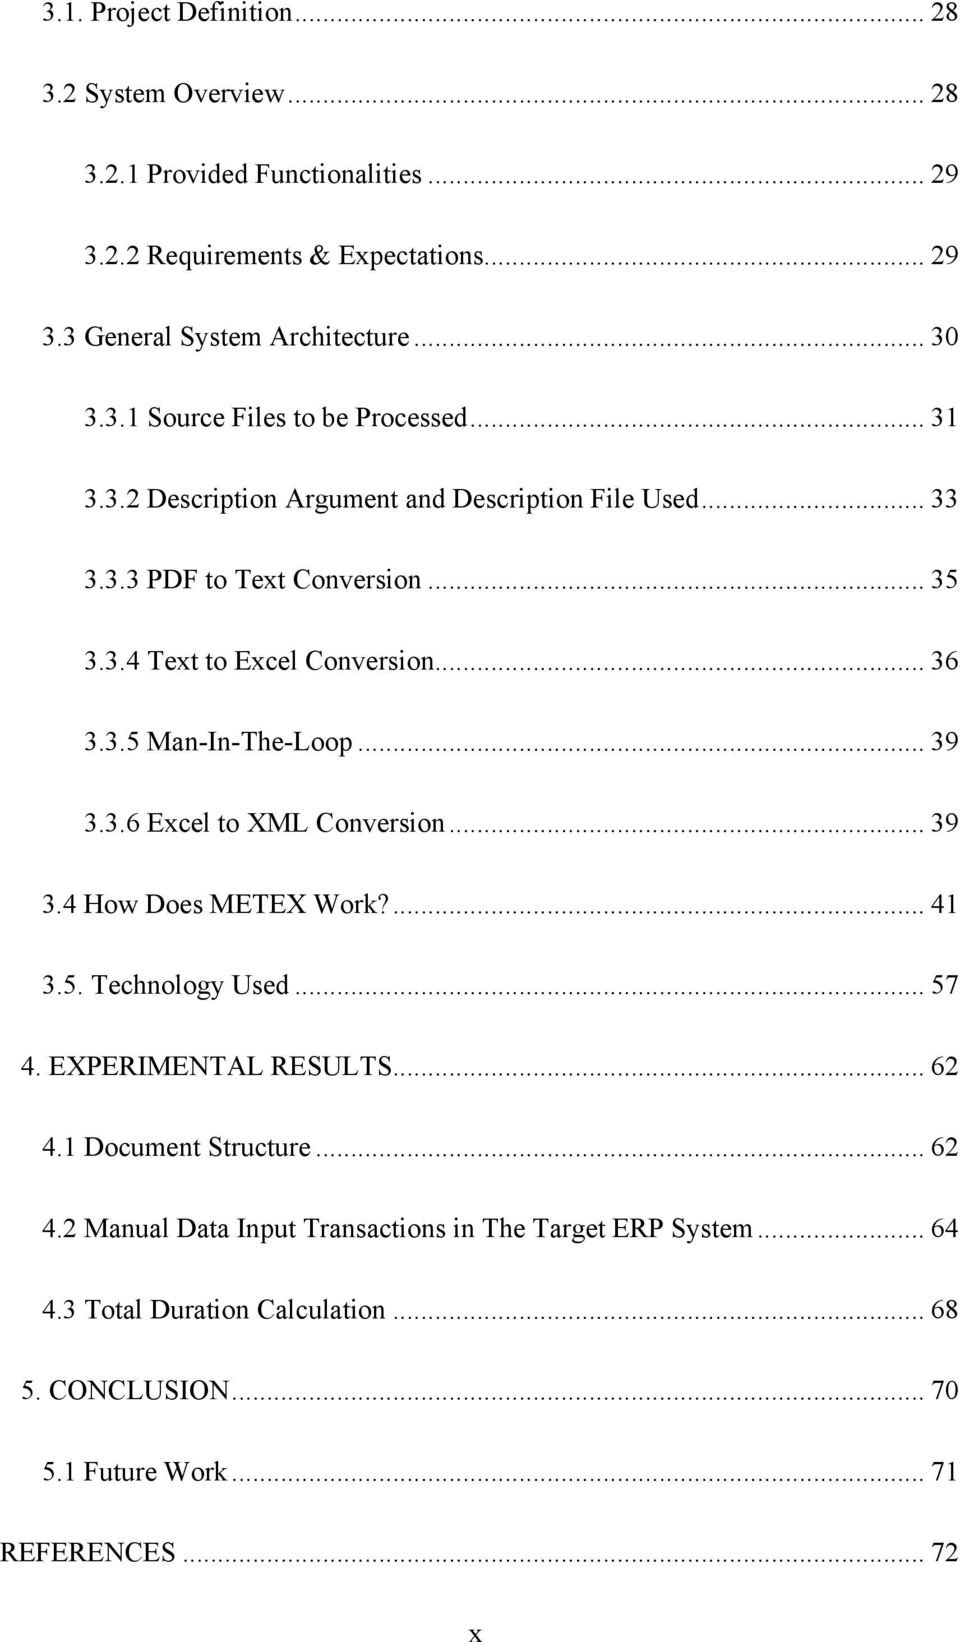 3.5 Man-In-The-Loop... 39 3.3.6 Excel to XML Conversion... 39 3.4 How Does METEX Work?... 41 3.5. Technology Used... 57 4. EXPERIMENTAL RESULTS... 62 4.